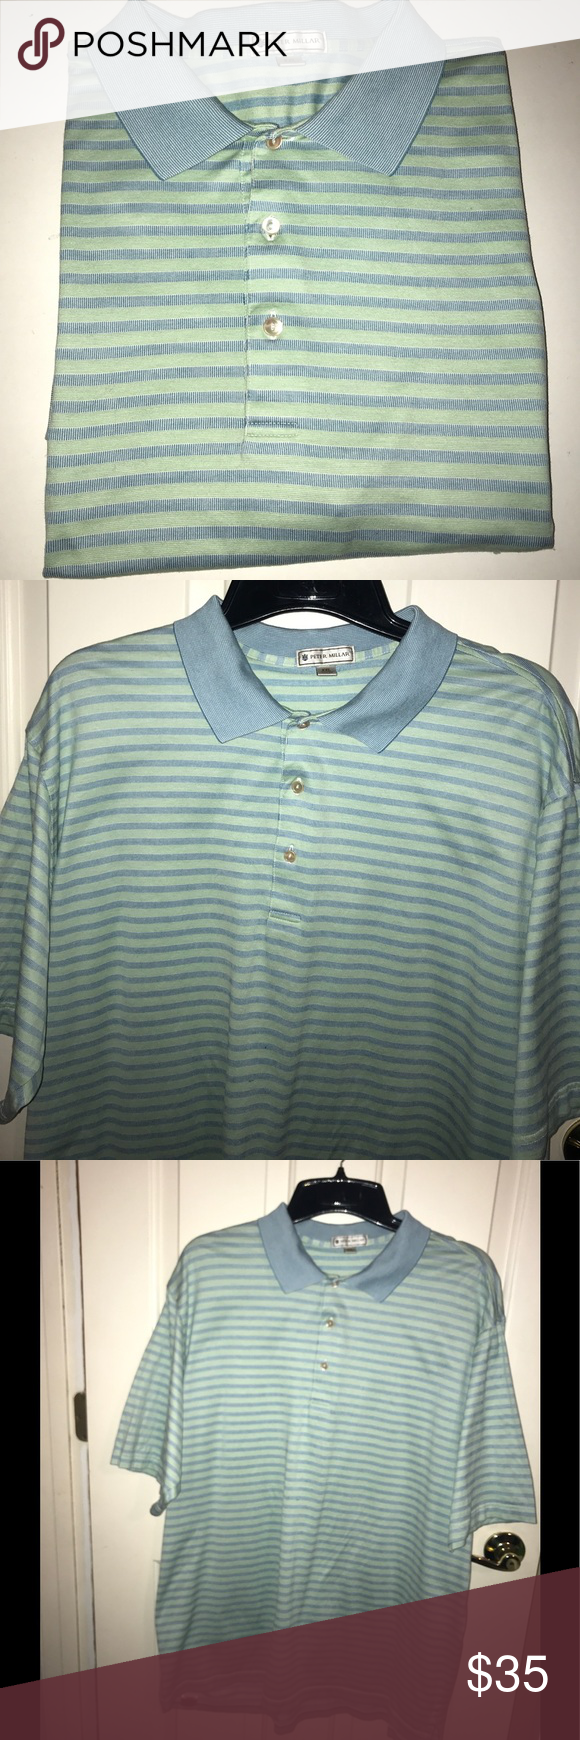 EUC💚PETER MILLAR💚Stripe Polo Shirt EUC💚PETER MILLAR💚Stripe Polo Shirt. Size-XXL. 100 % Cotton. Original cost $125 Peter Millar Shirts Polos